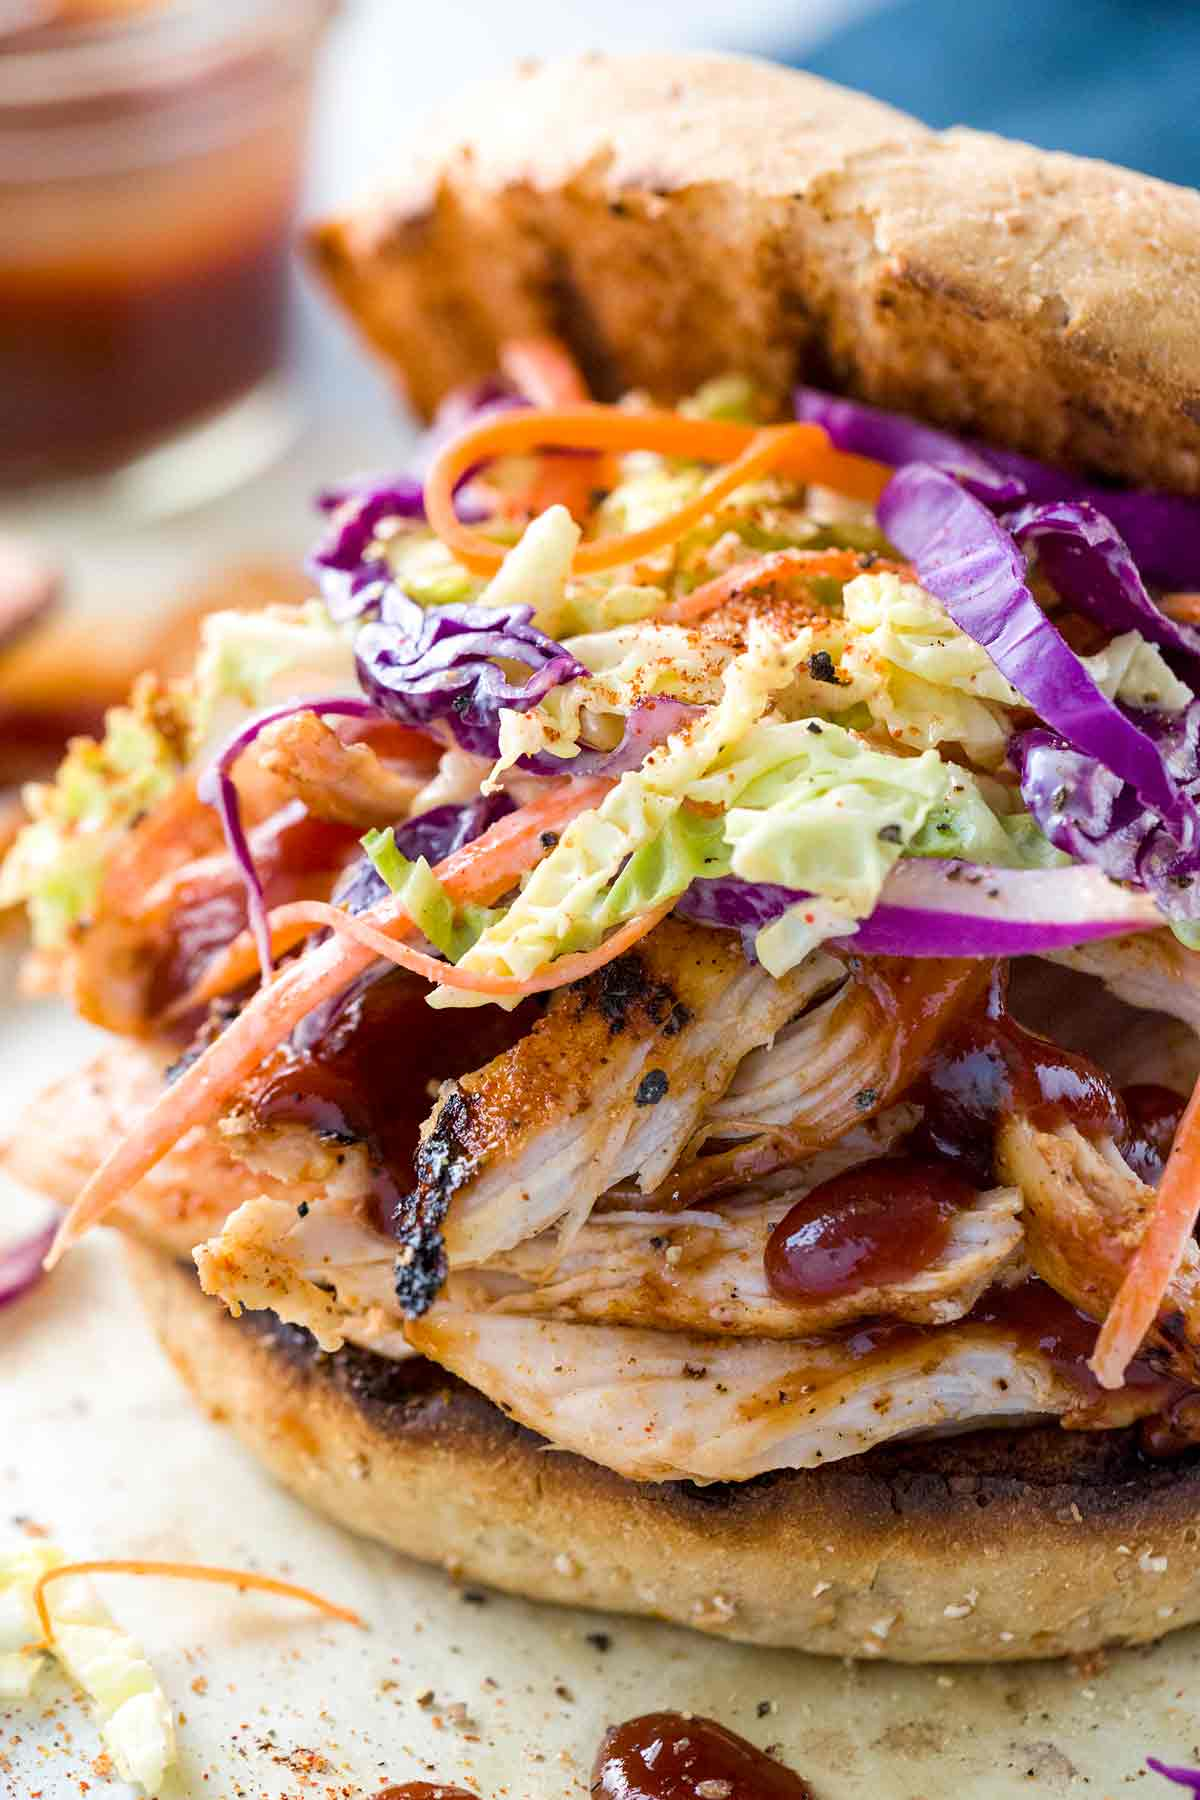 A sandwich with homemade coleslaw piled on top of pieces of pulled chicken